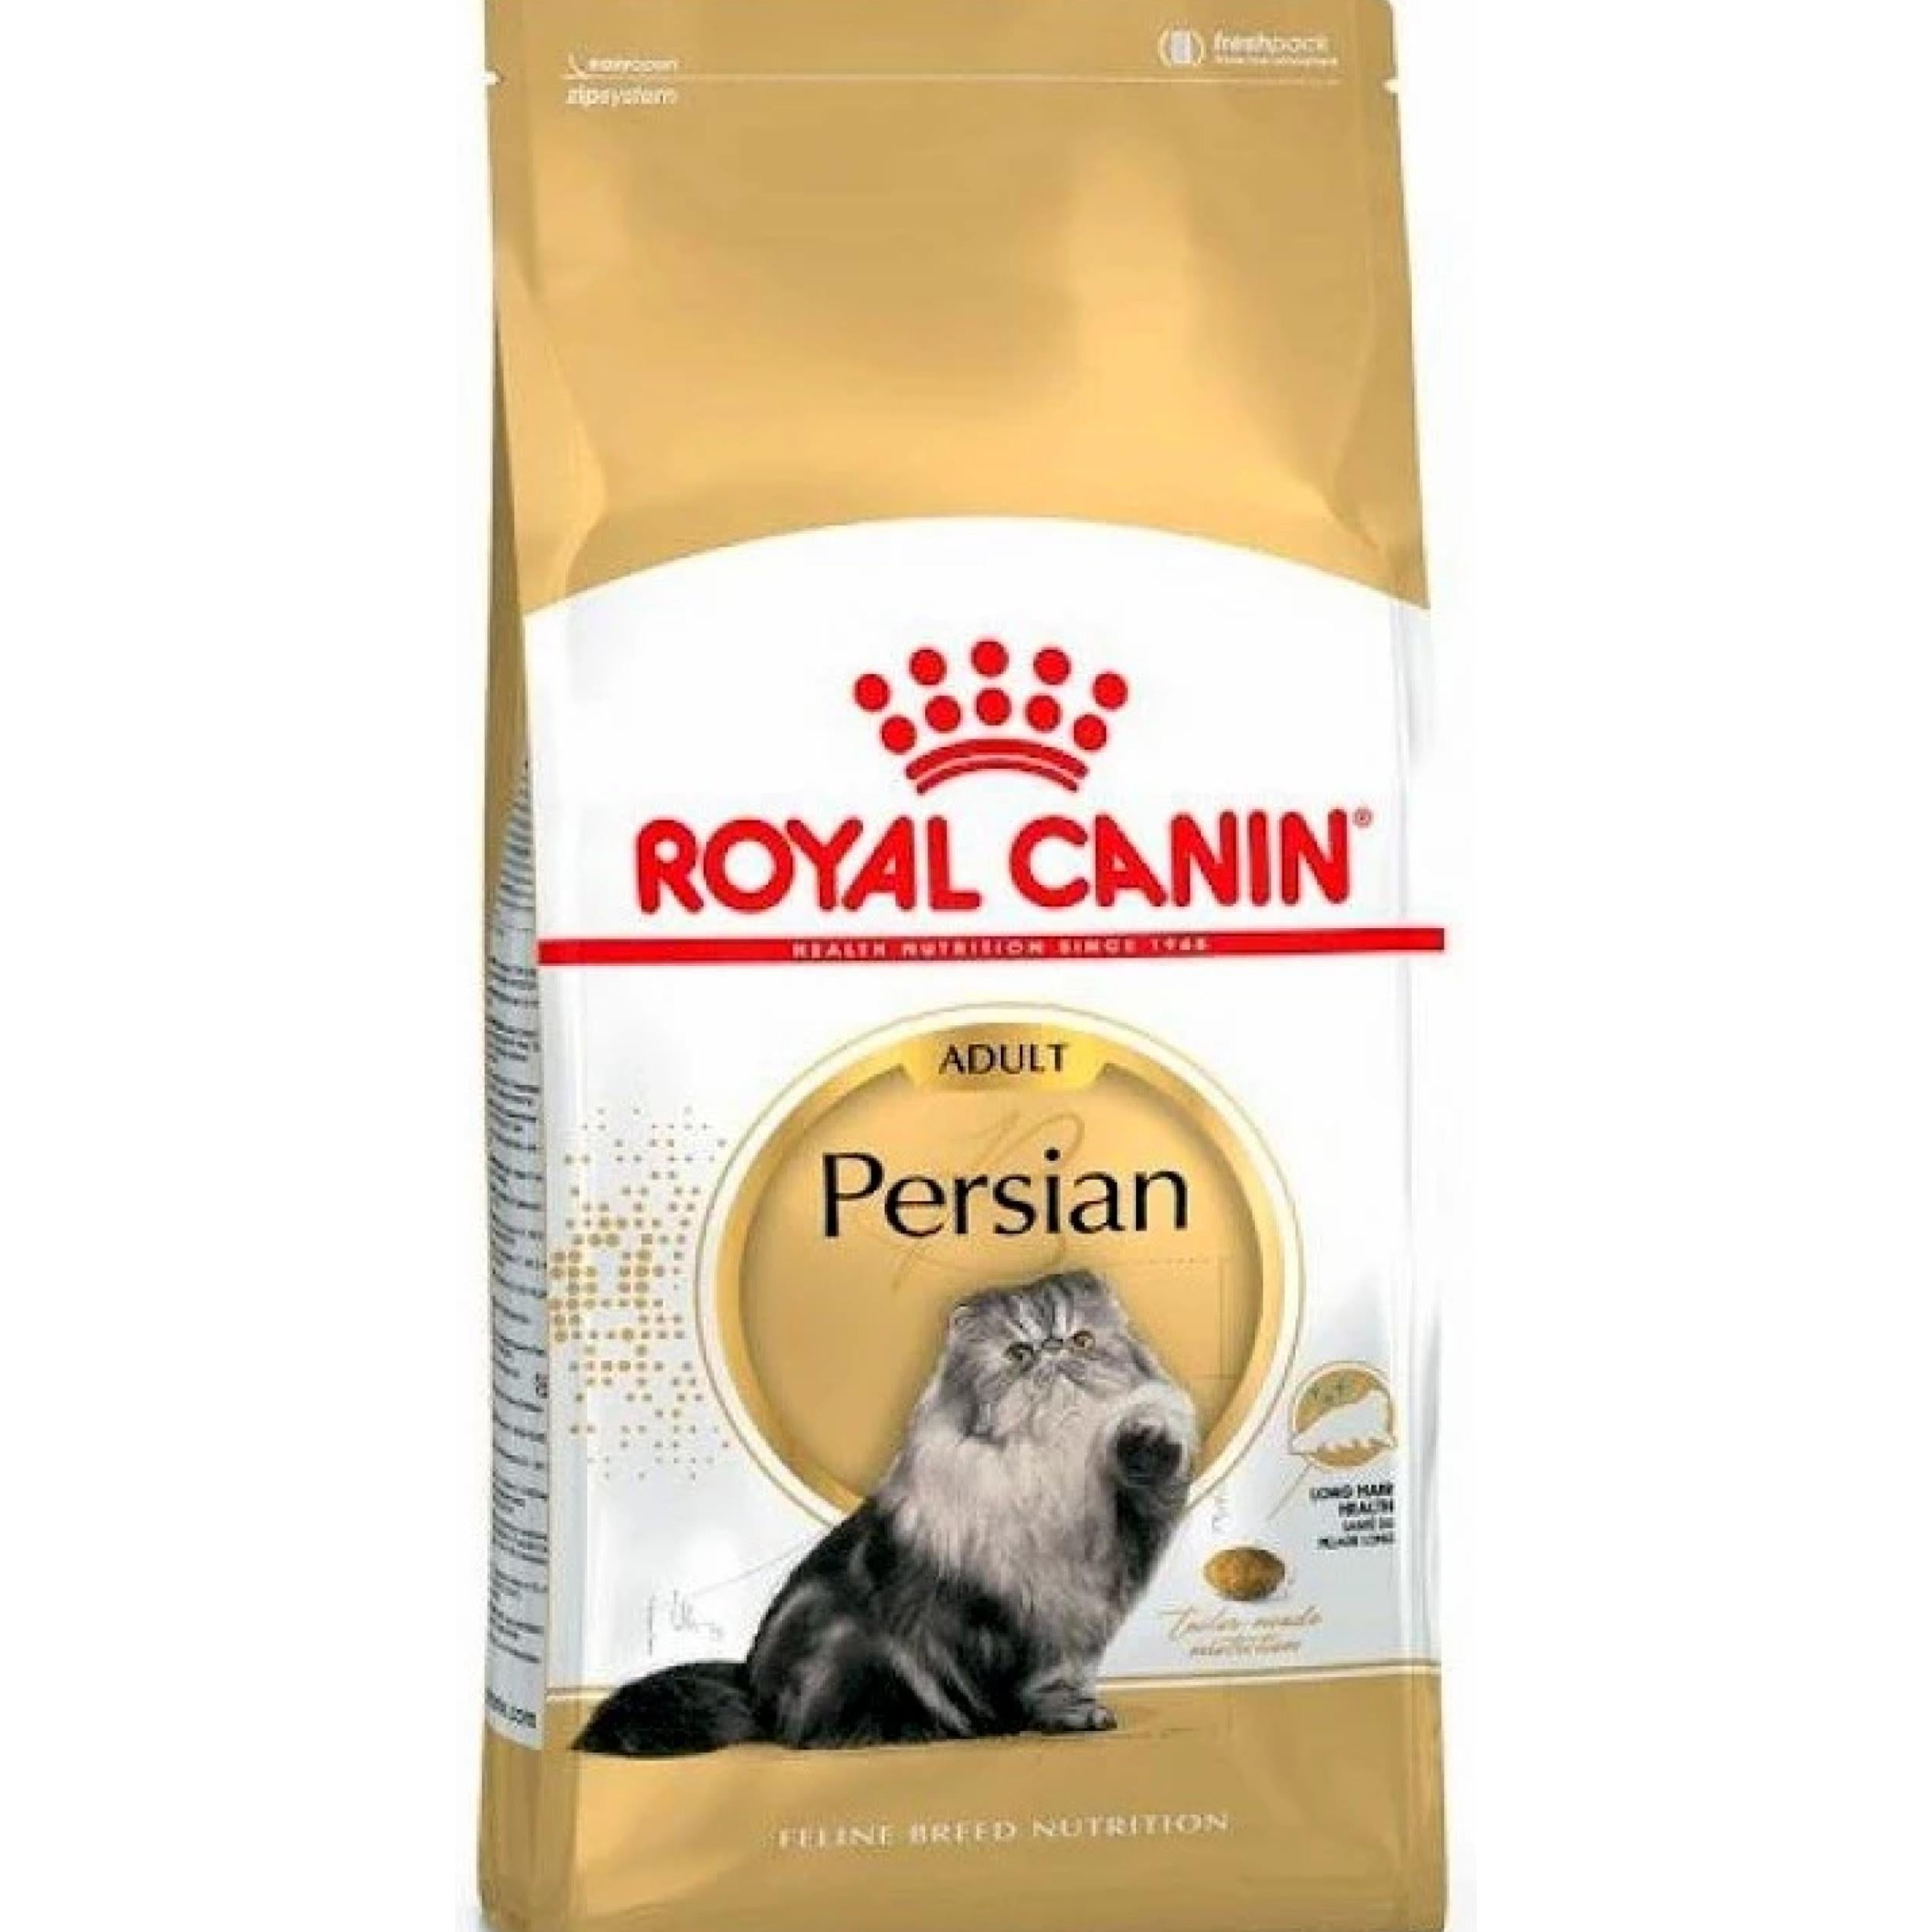 Royal Canin Persian Cat Food - Poochles